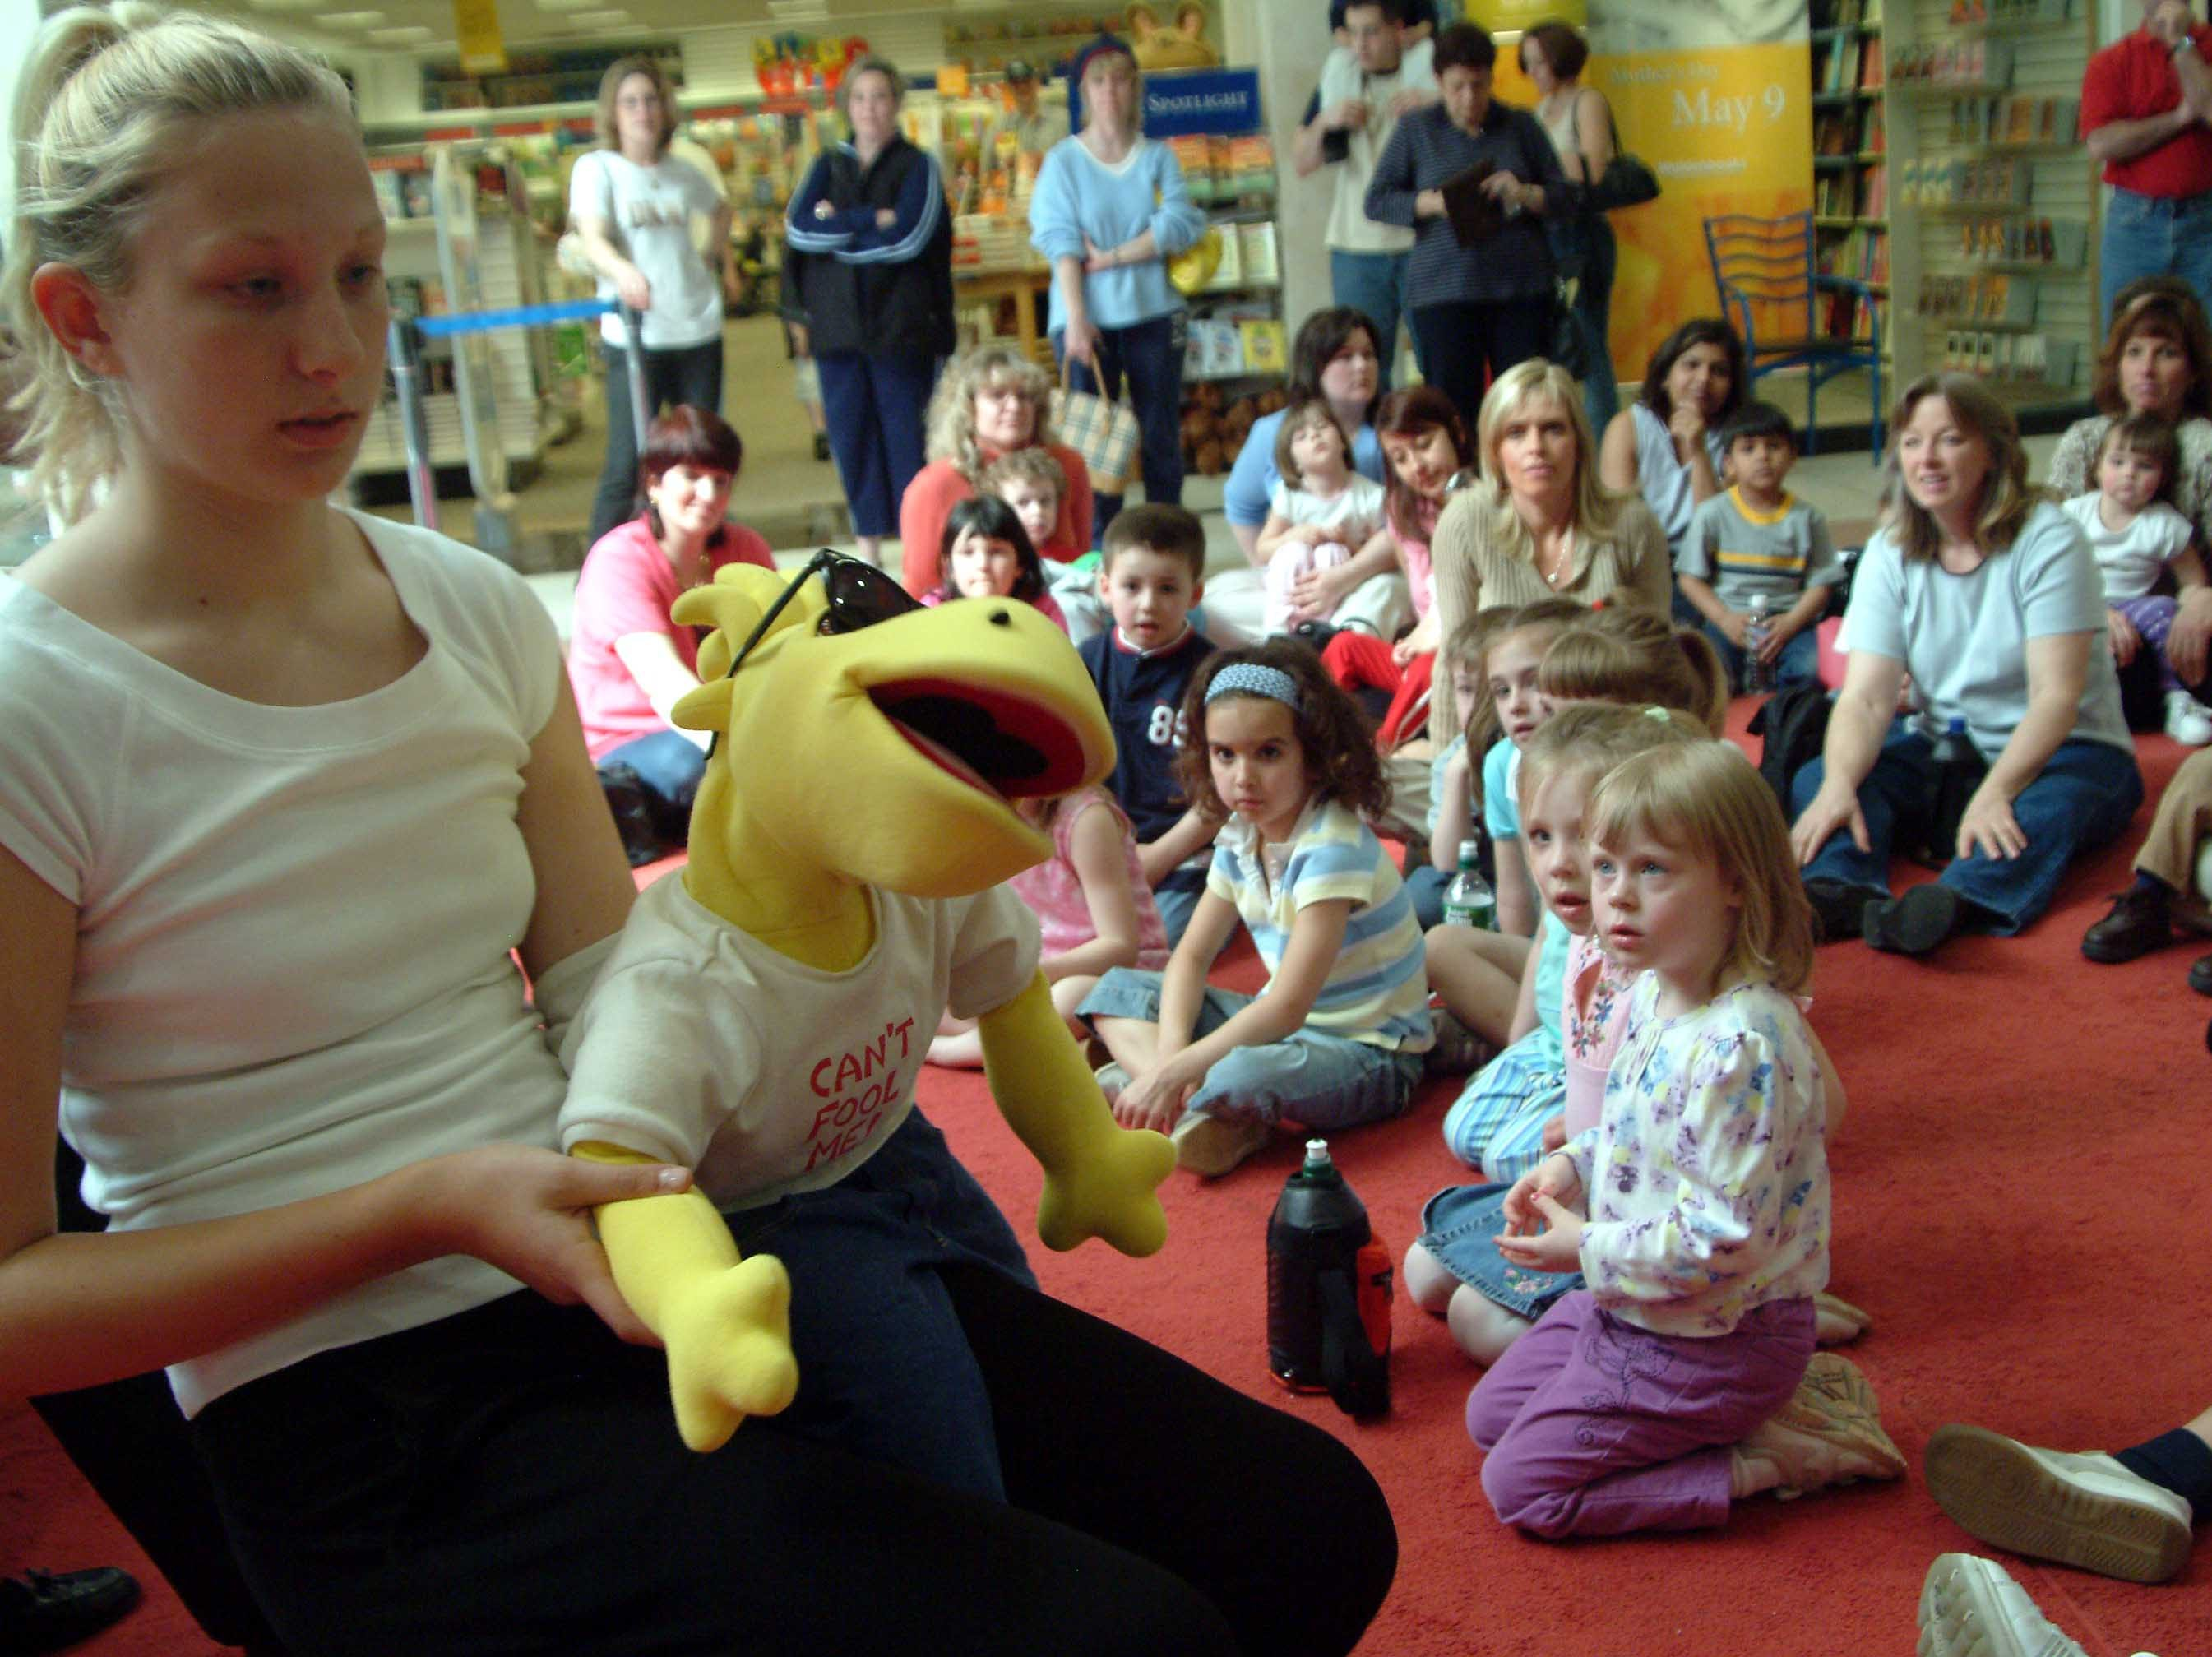 Yellow Dyno teaching kids how to be safe at Wayne Hills Mall in the early 2000s.